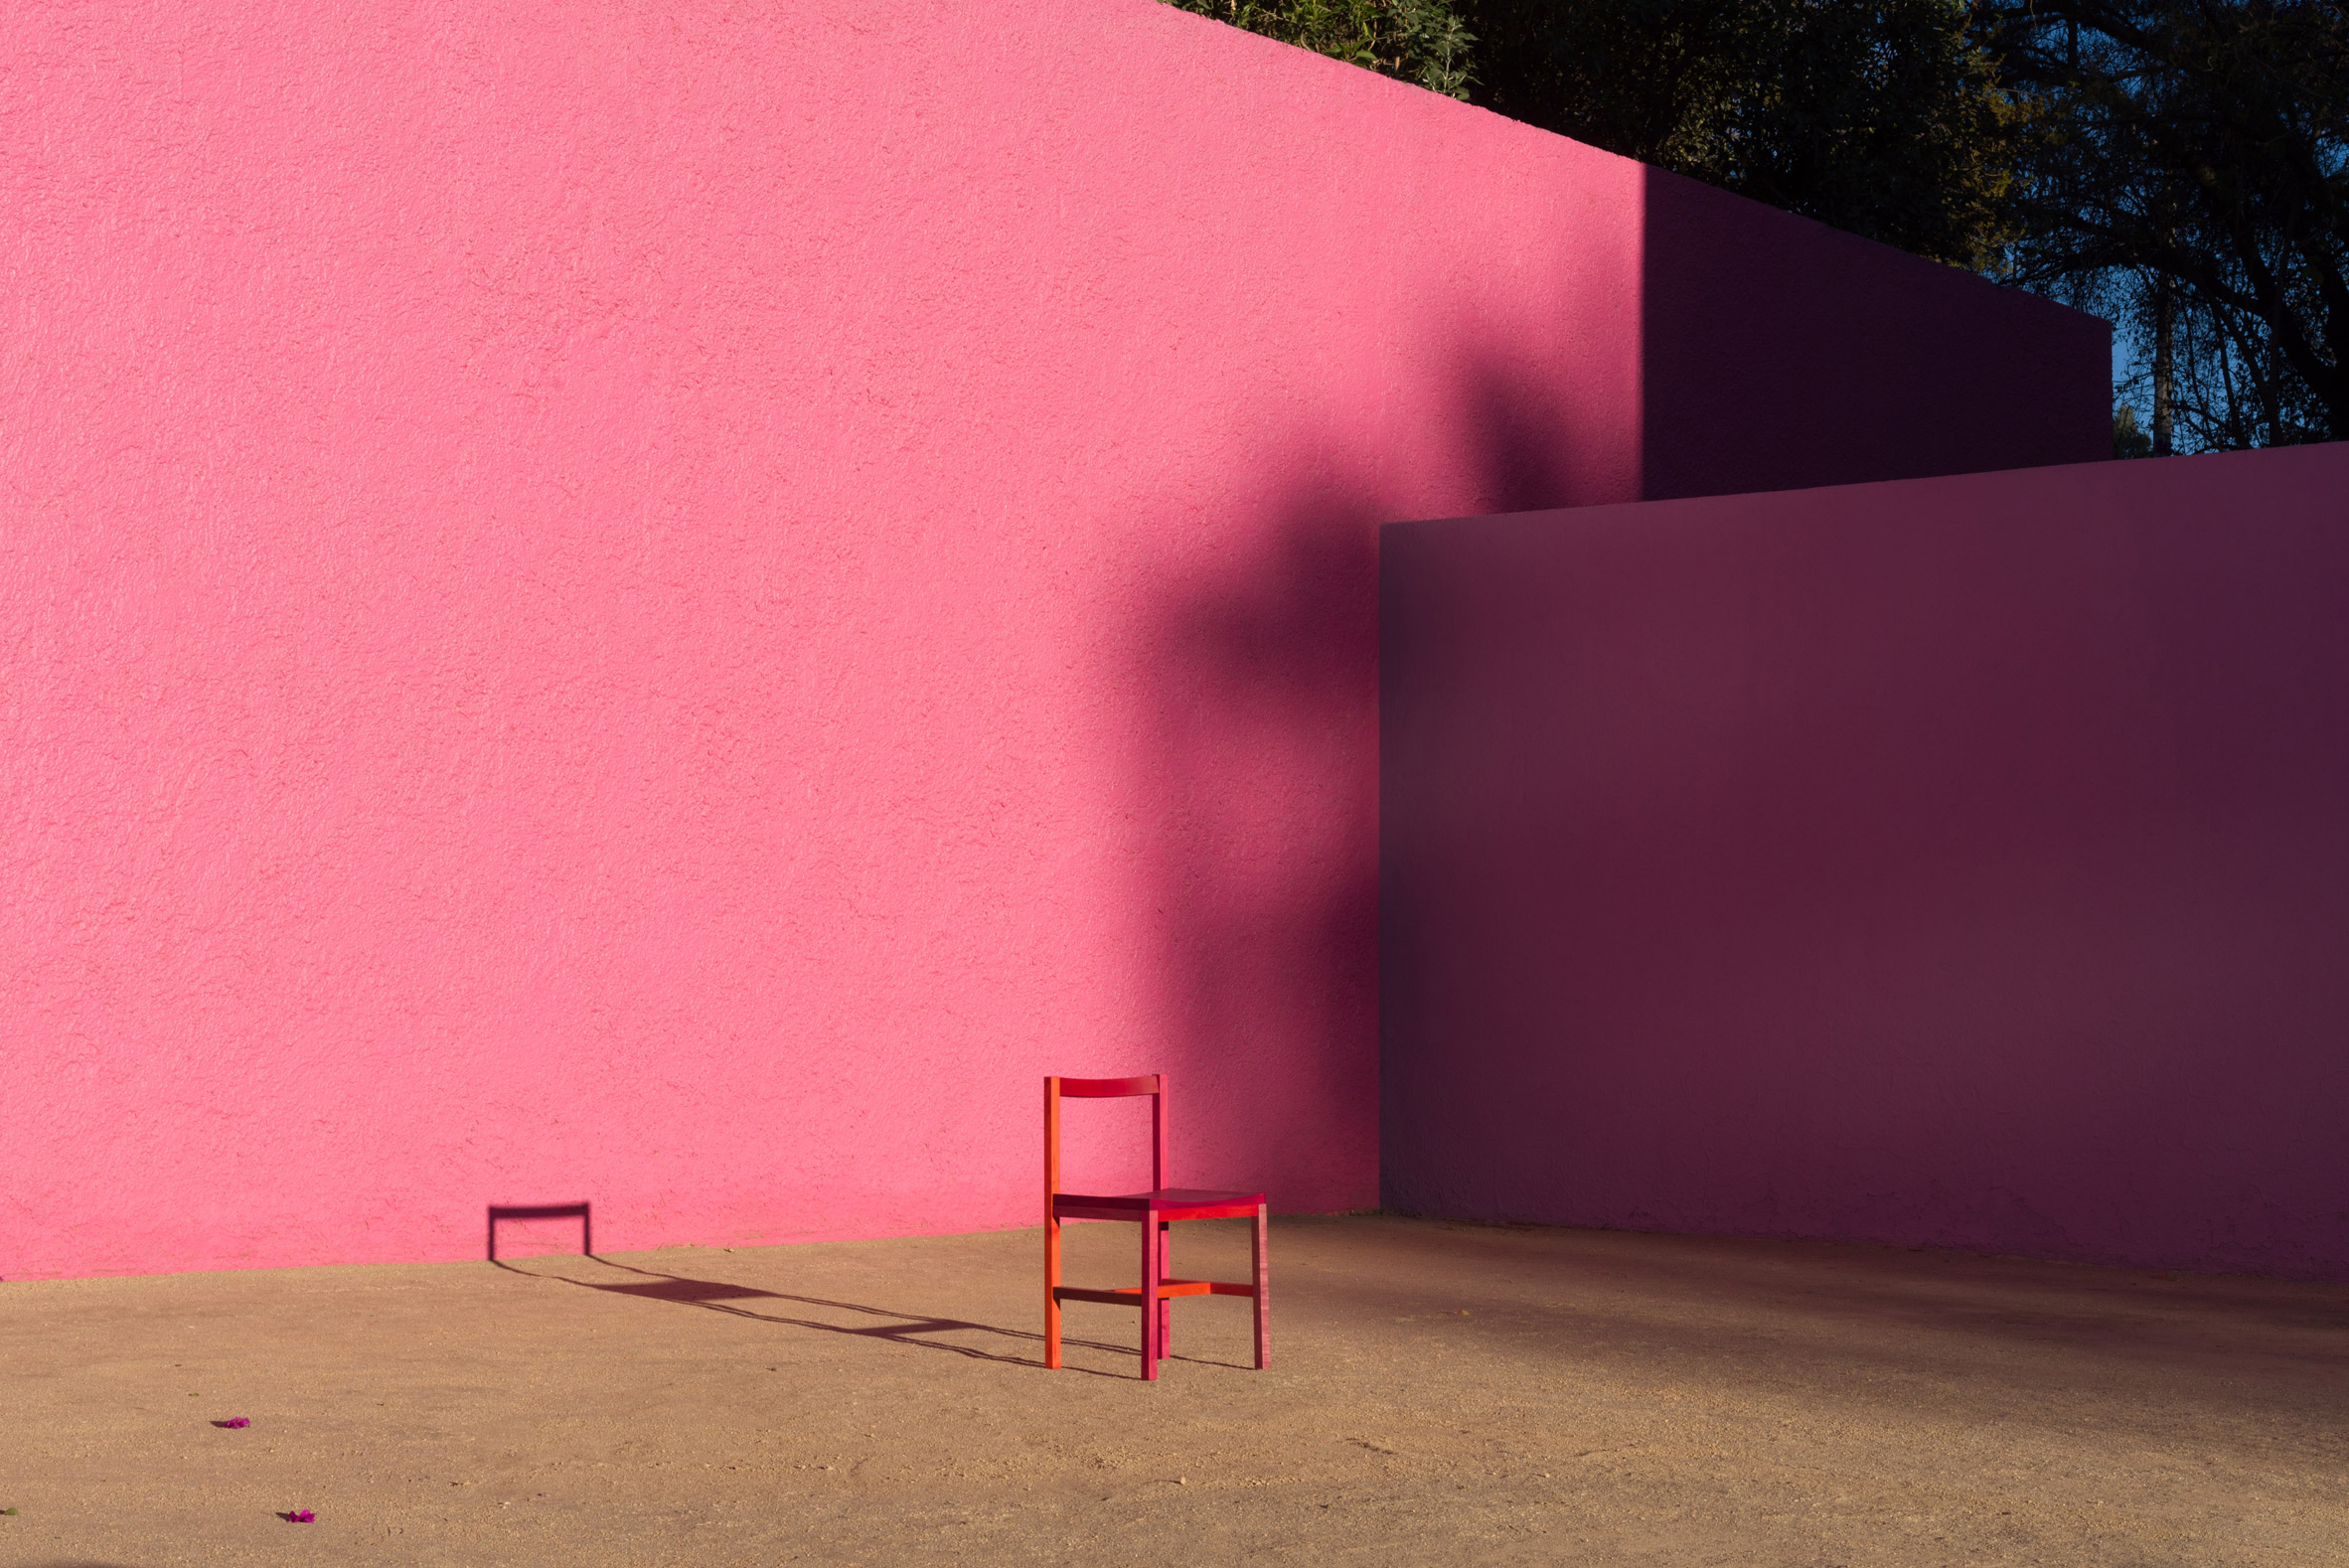 Multicoloured Grana chair by Moisés Hernández in front of pink wall